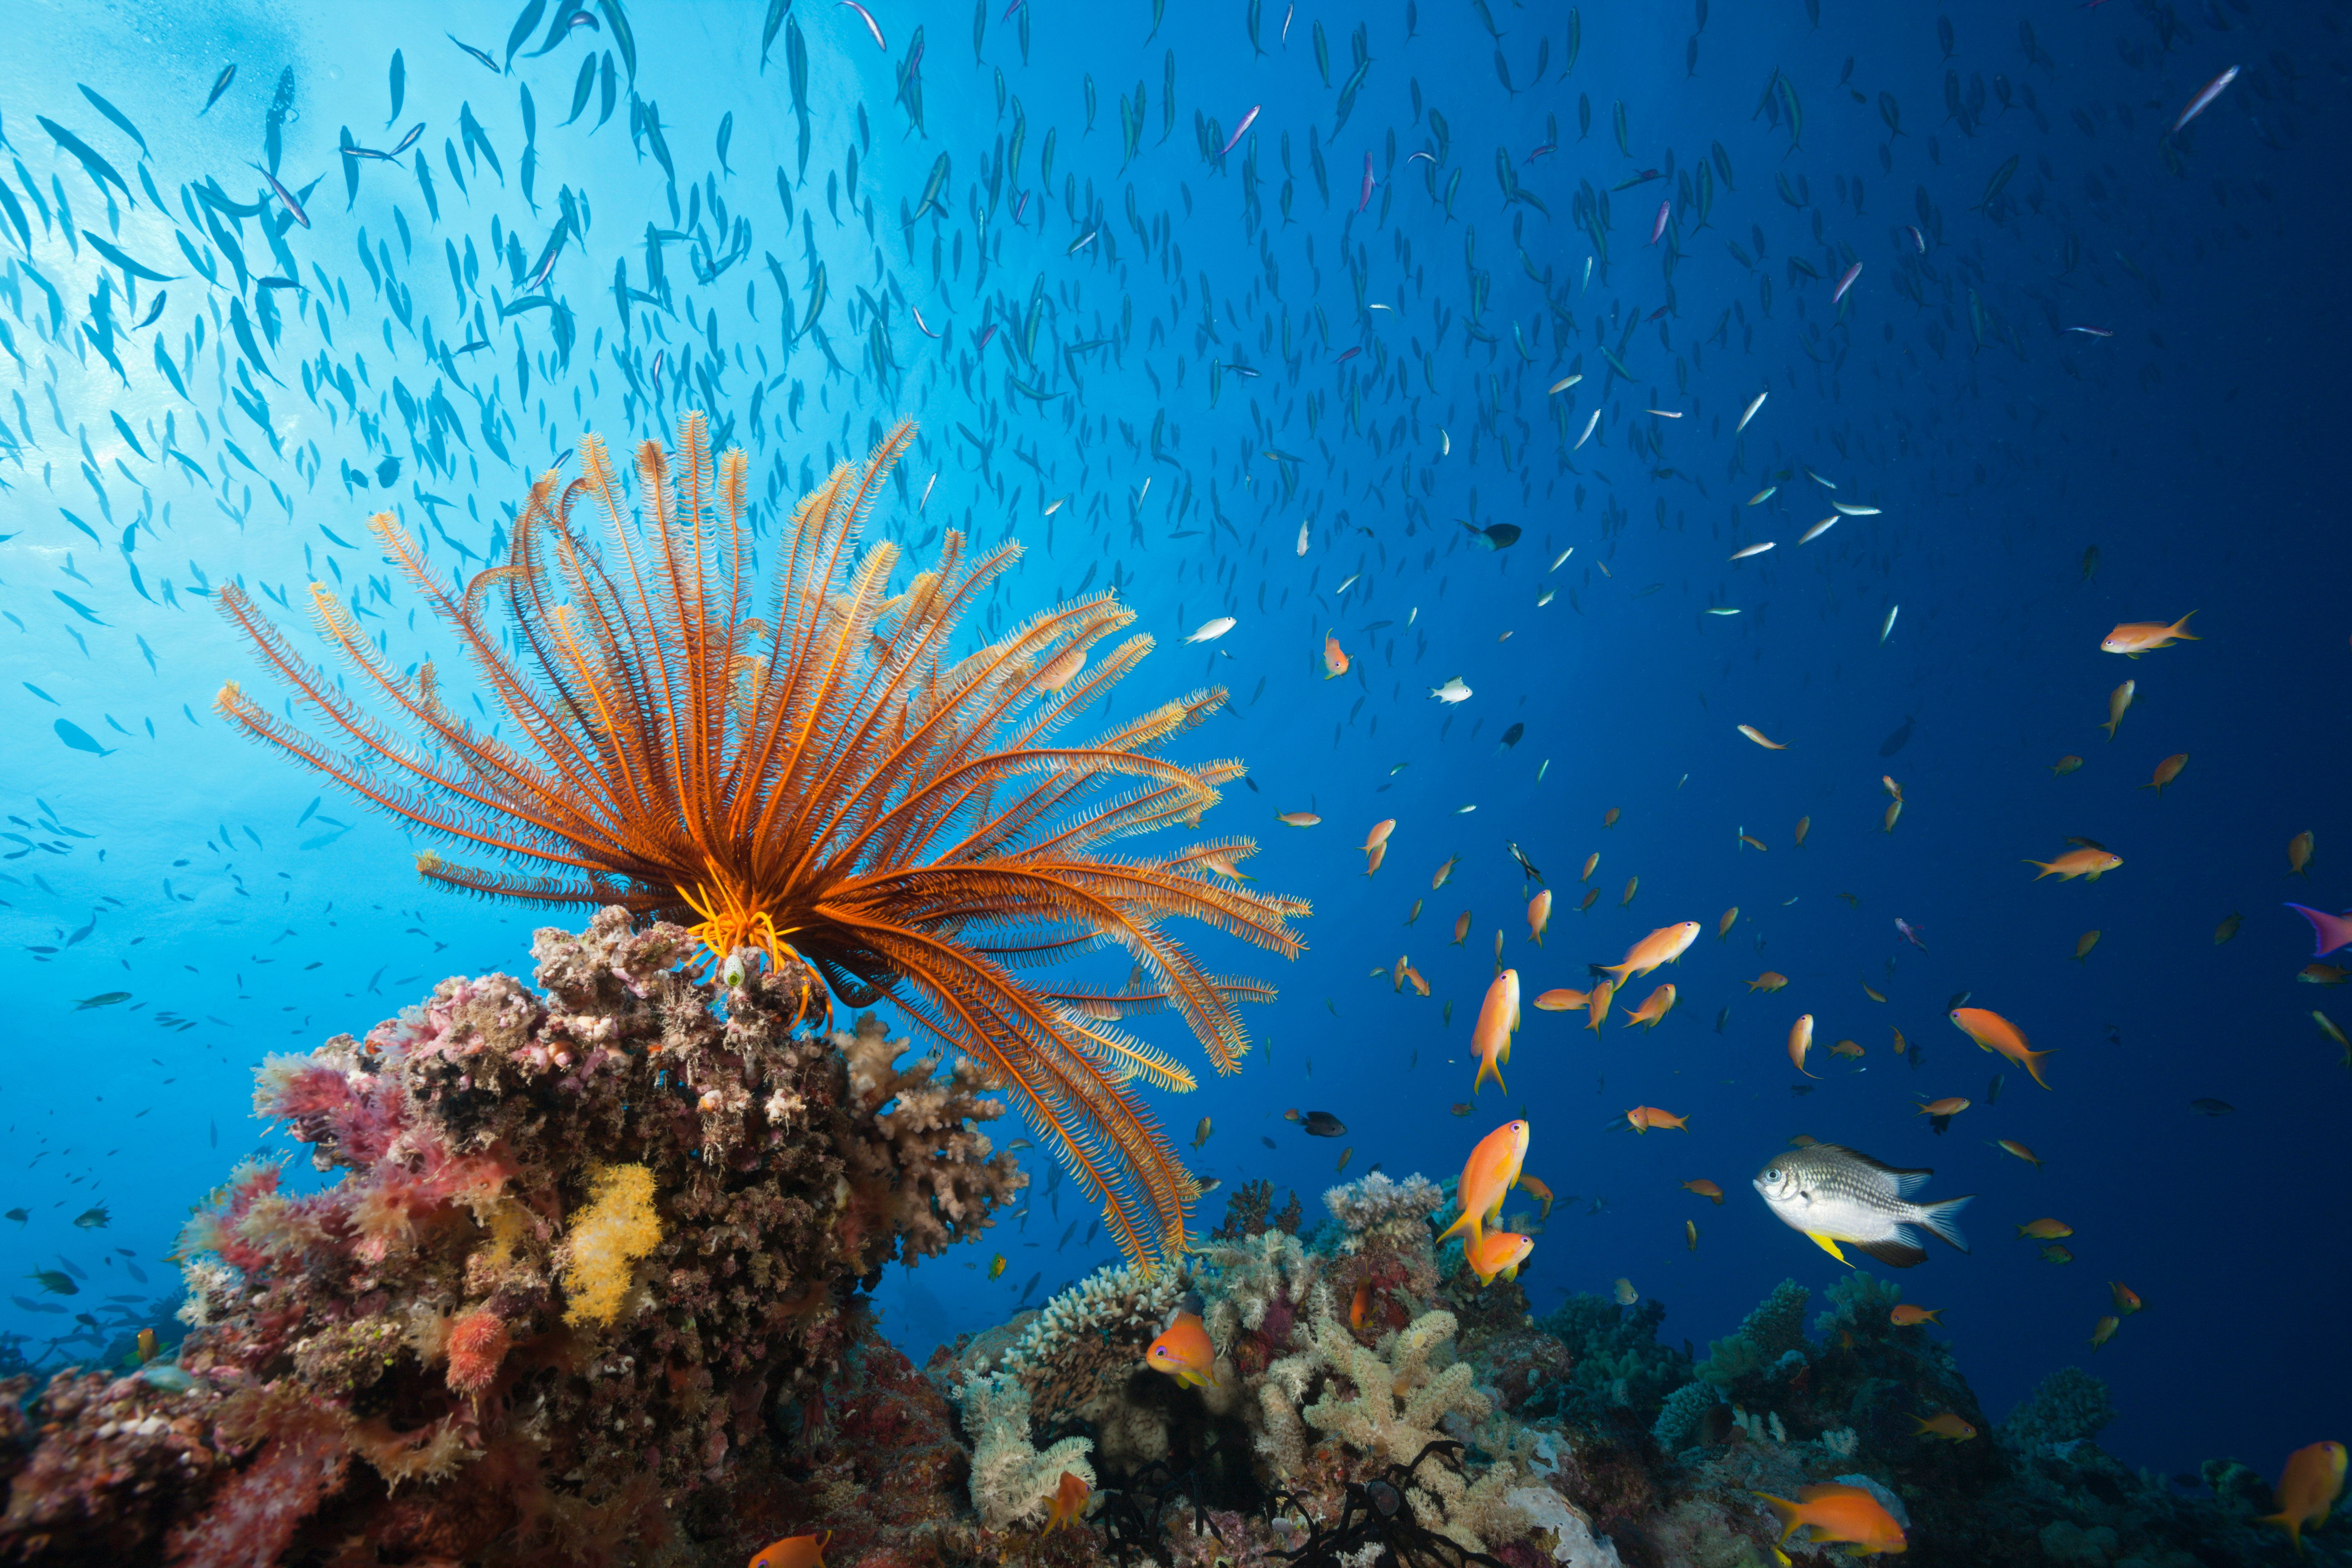 (GERMANY OUT)   Reef Scene with Crinoid and Fishes, Great Barrier Reef, Australia   (Photo by Reinhard Dirscherl\ullstein bild via Getty Images)